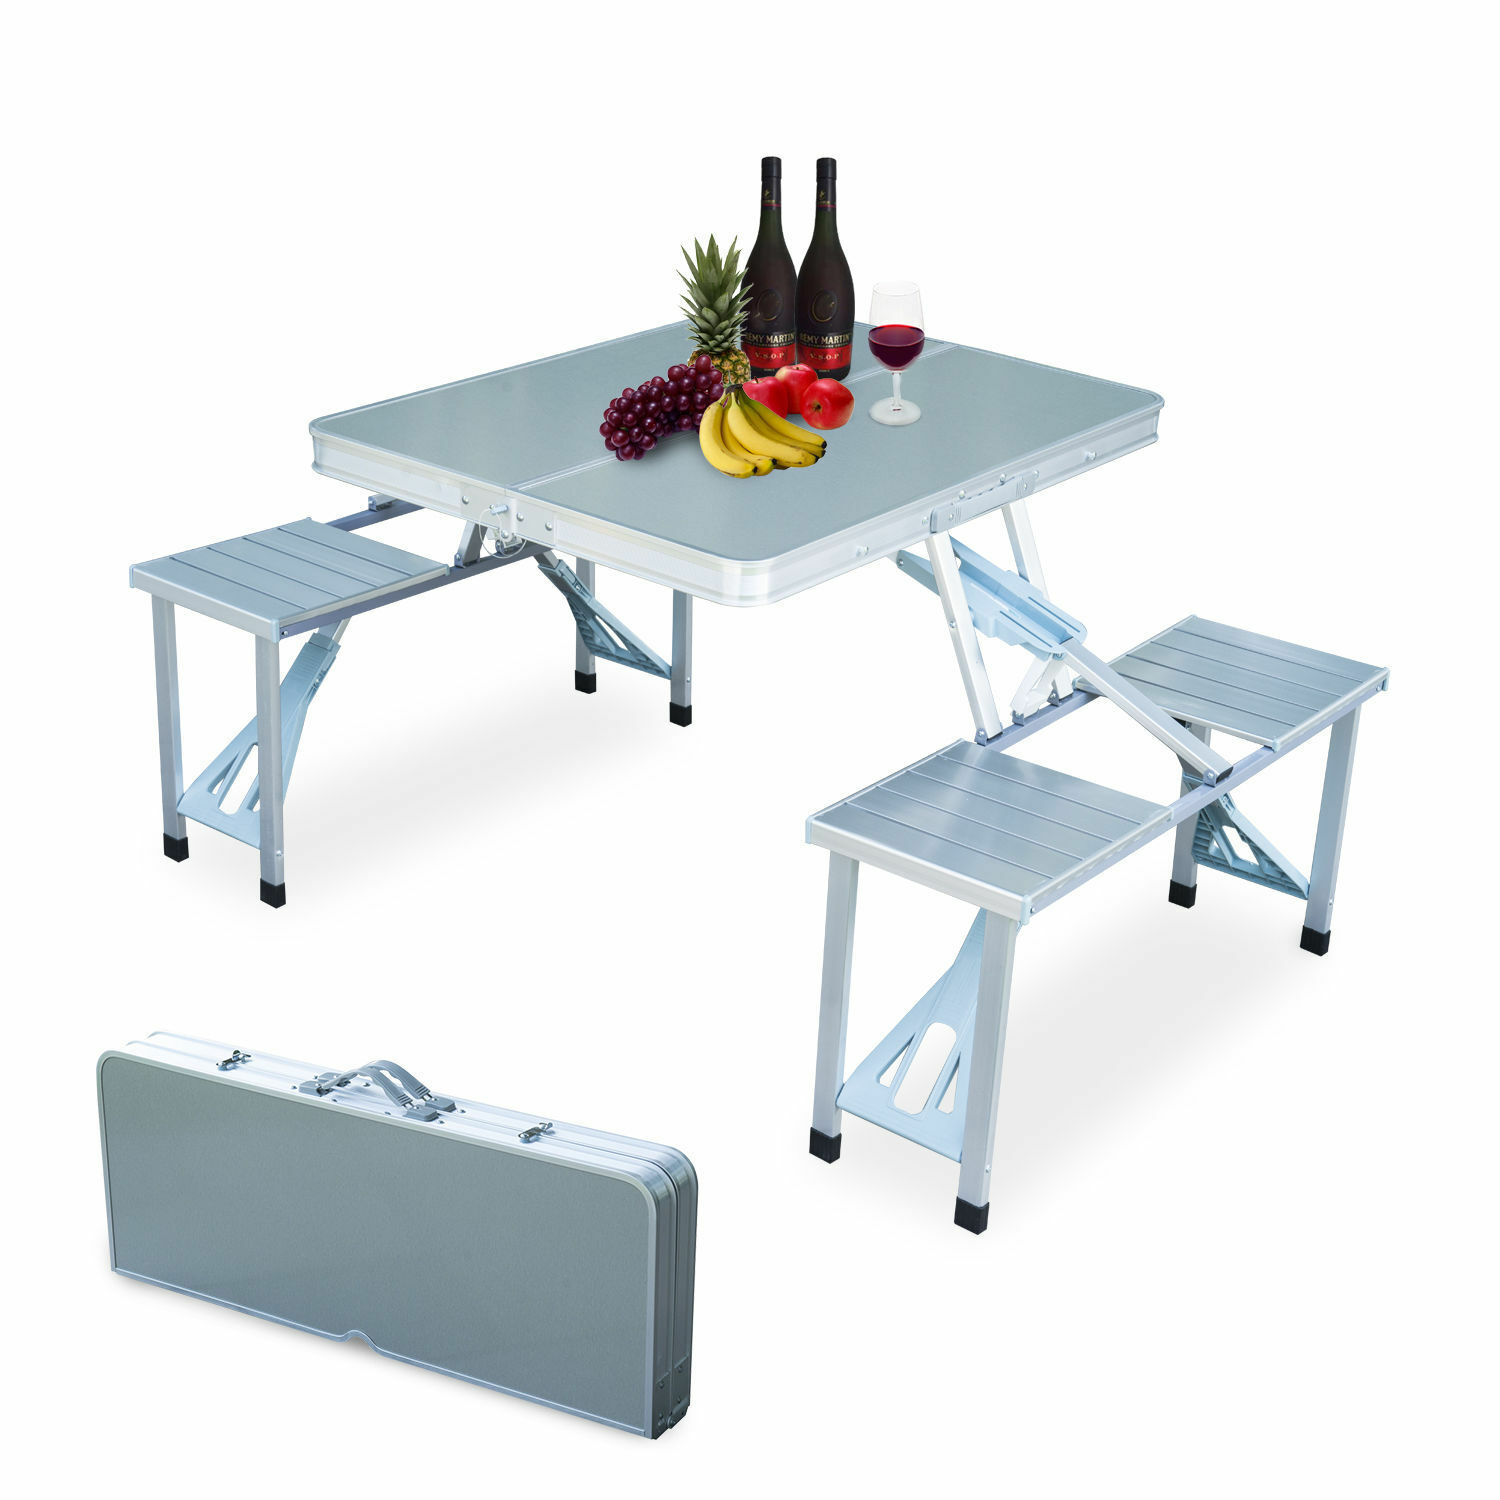 New Outdoor Garden Aluminum Portable Folding Camping Picnic Table With 4 Seats 1 Of 10free Shipping